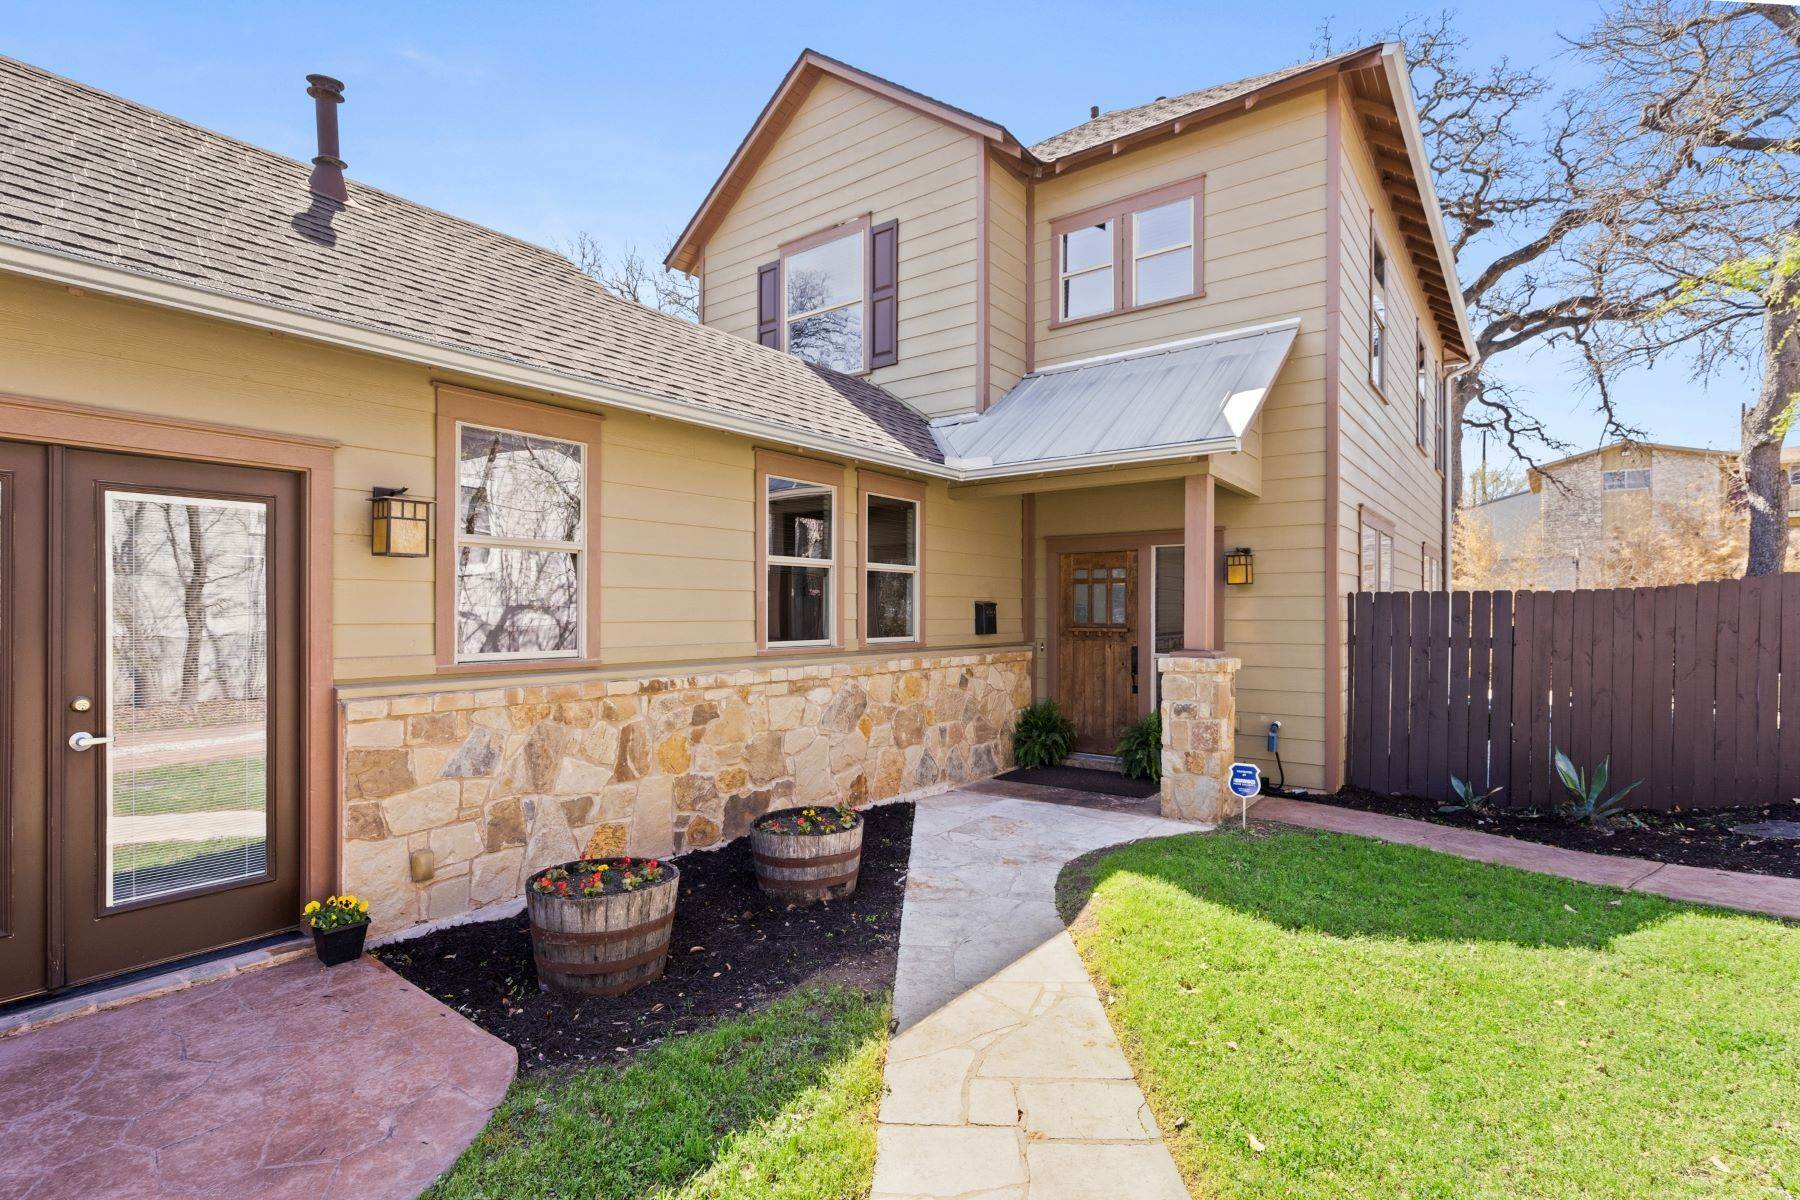 Single Family Homes for Sale at For Sale in North University 205 East 33rd Street Austin, Texas 78705 United States